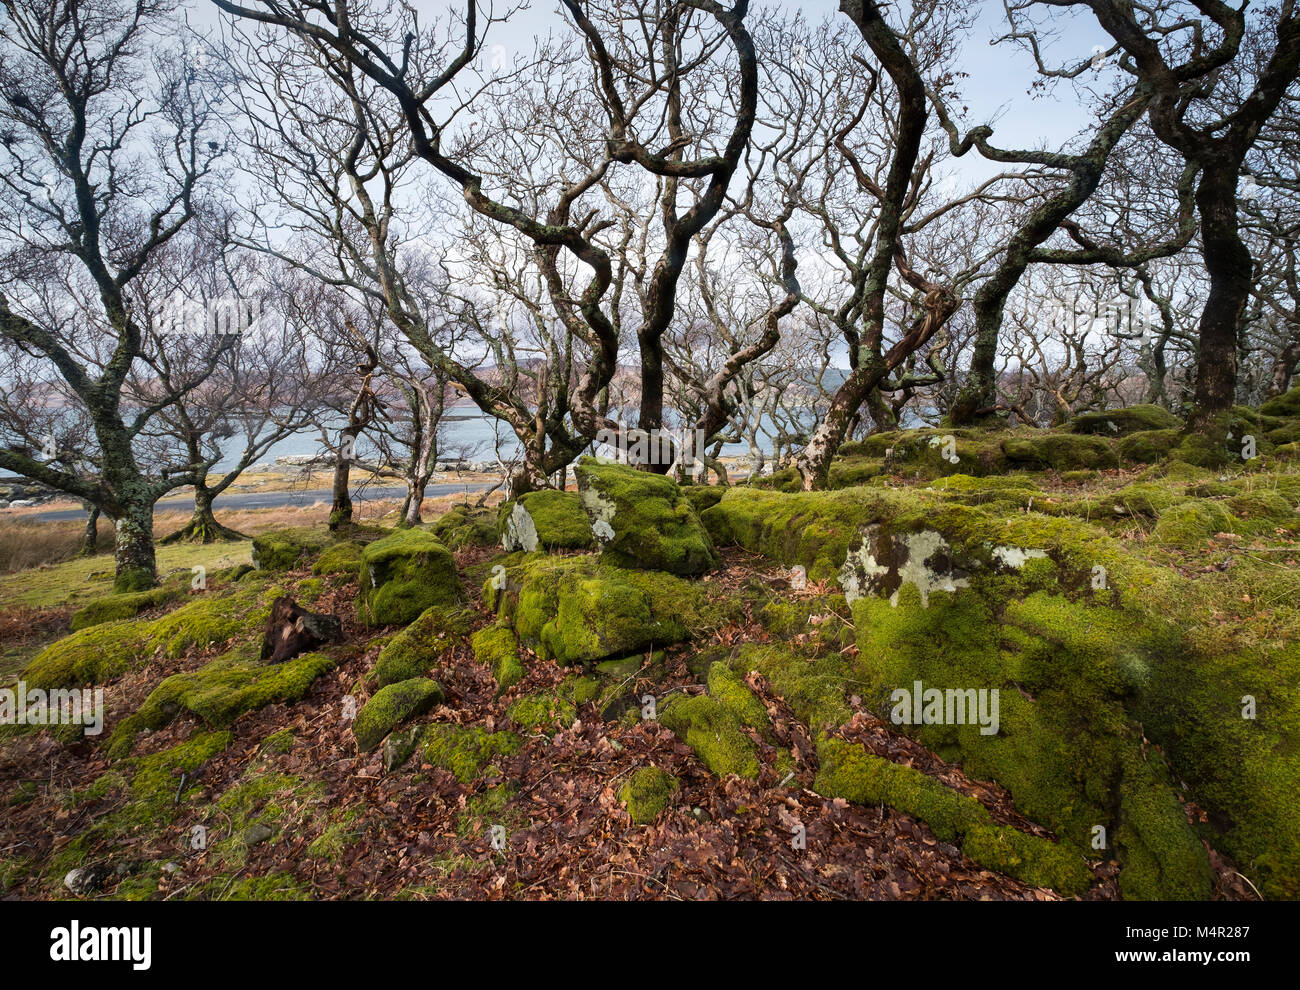 Sessile Oak (Quercus petraea) dwarfed woodland habitat, bent and stunted by wind, Isle of Mull, Inner Hebrides, - Stock Image